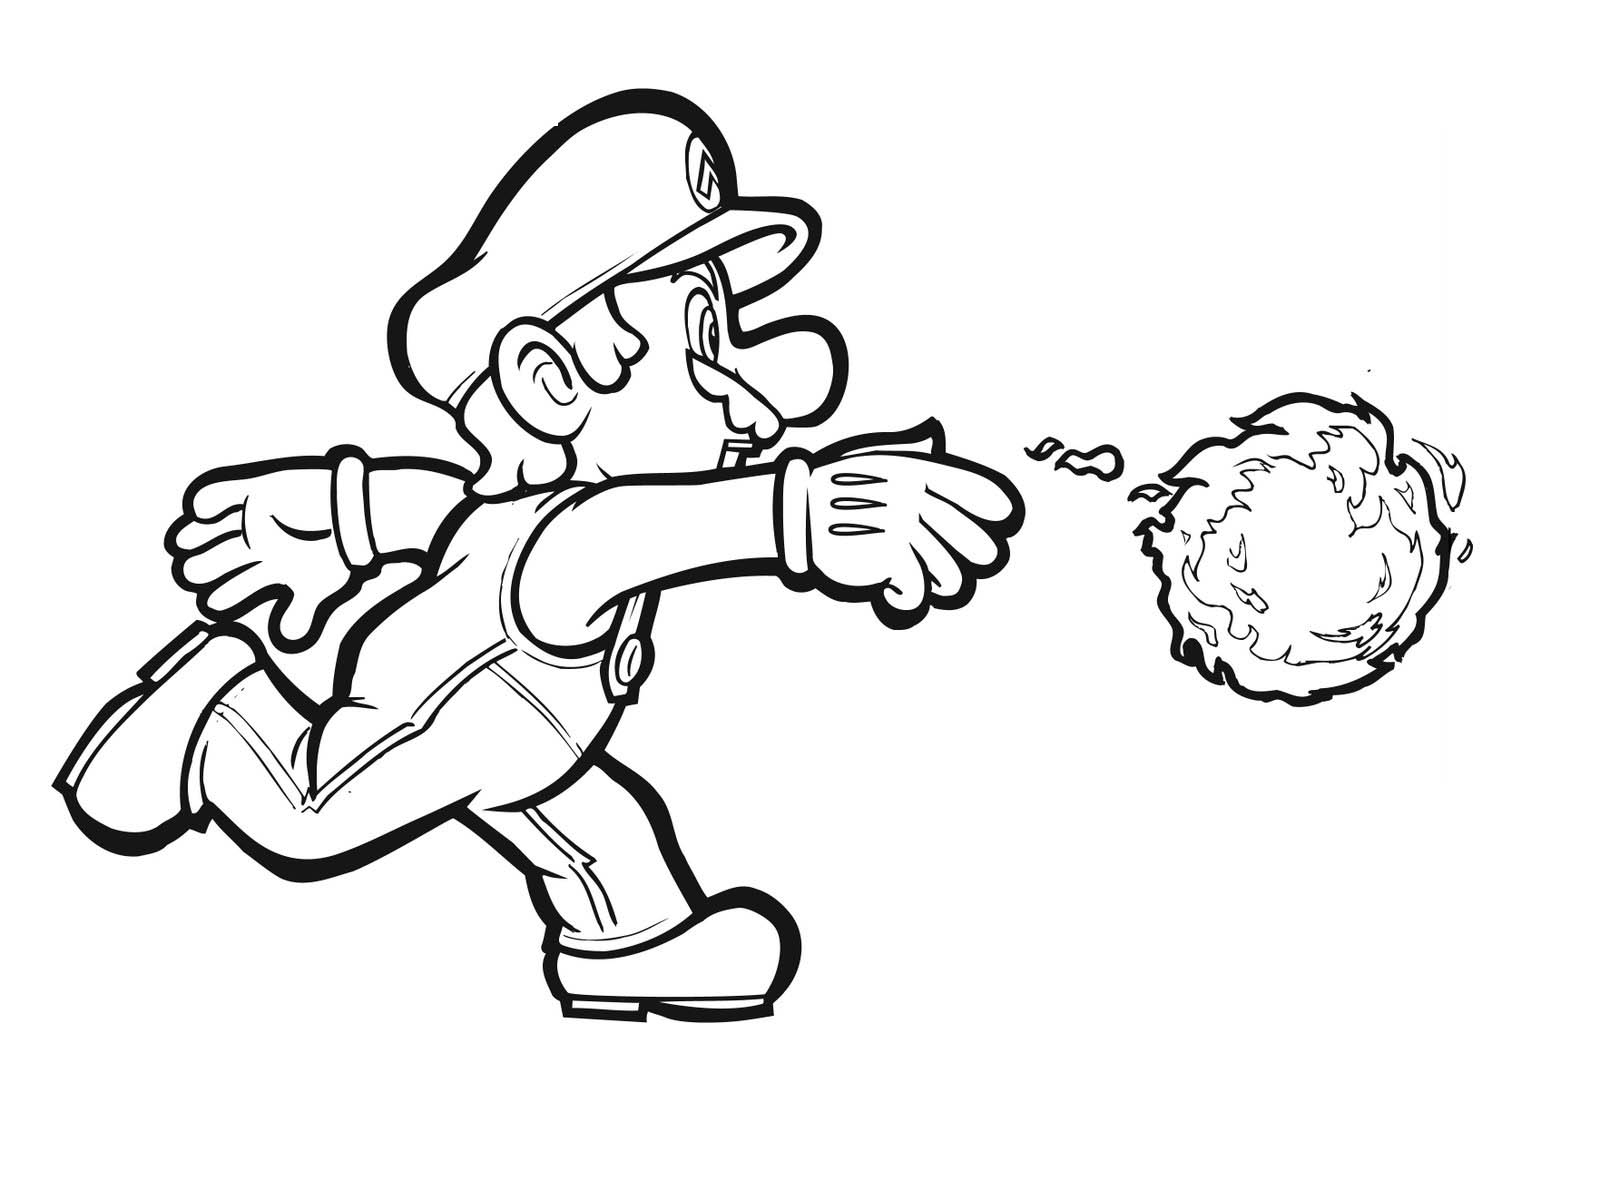 coloring pages of mario kart wii super mario kart usa mario kart coloring page of pages coloring wii kart mario